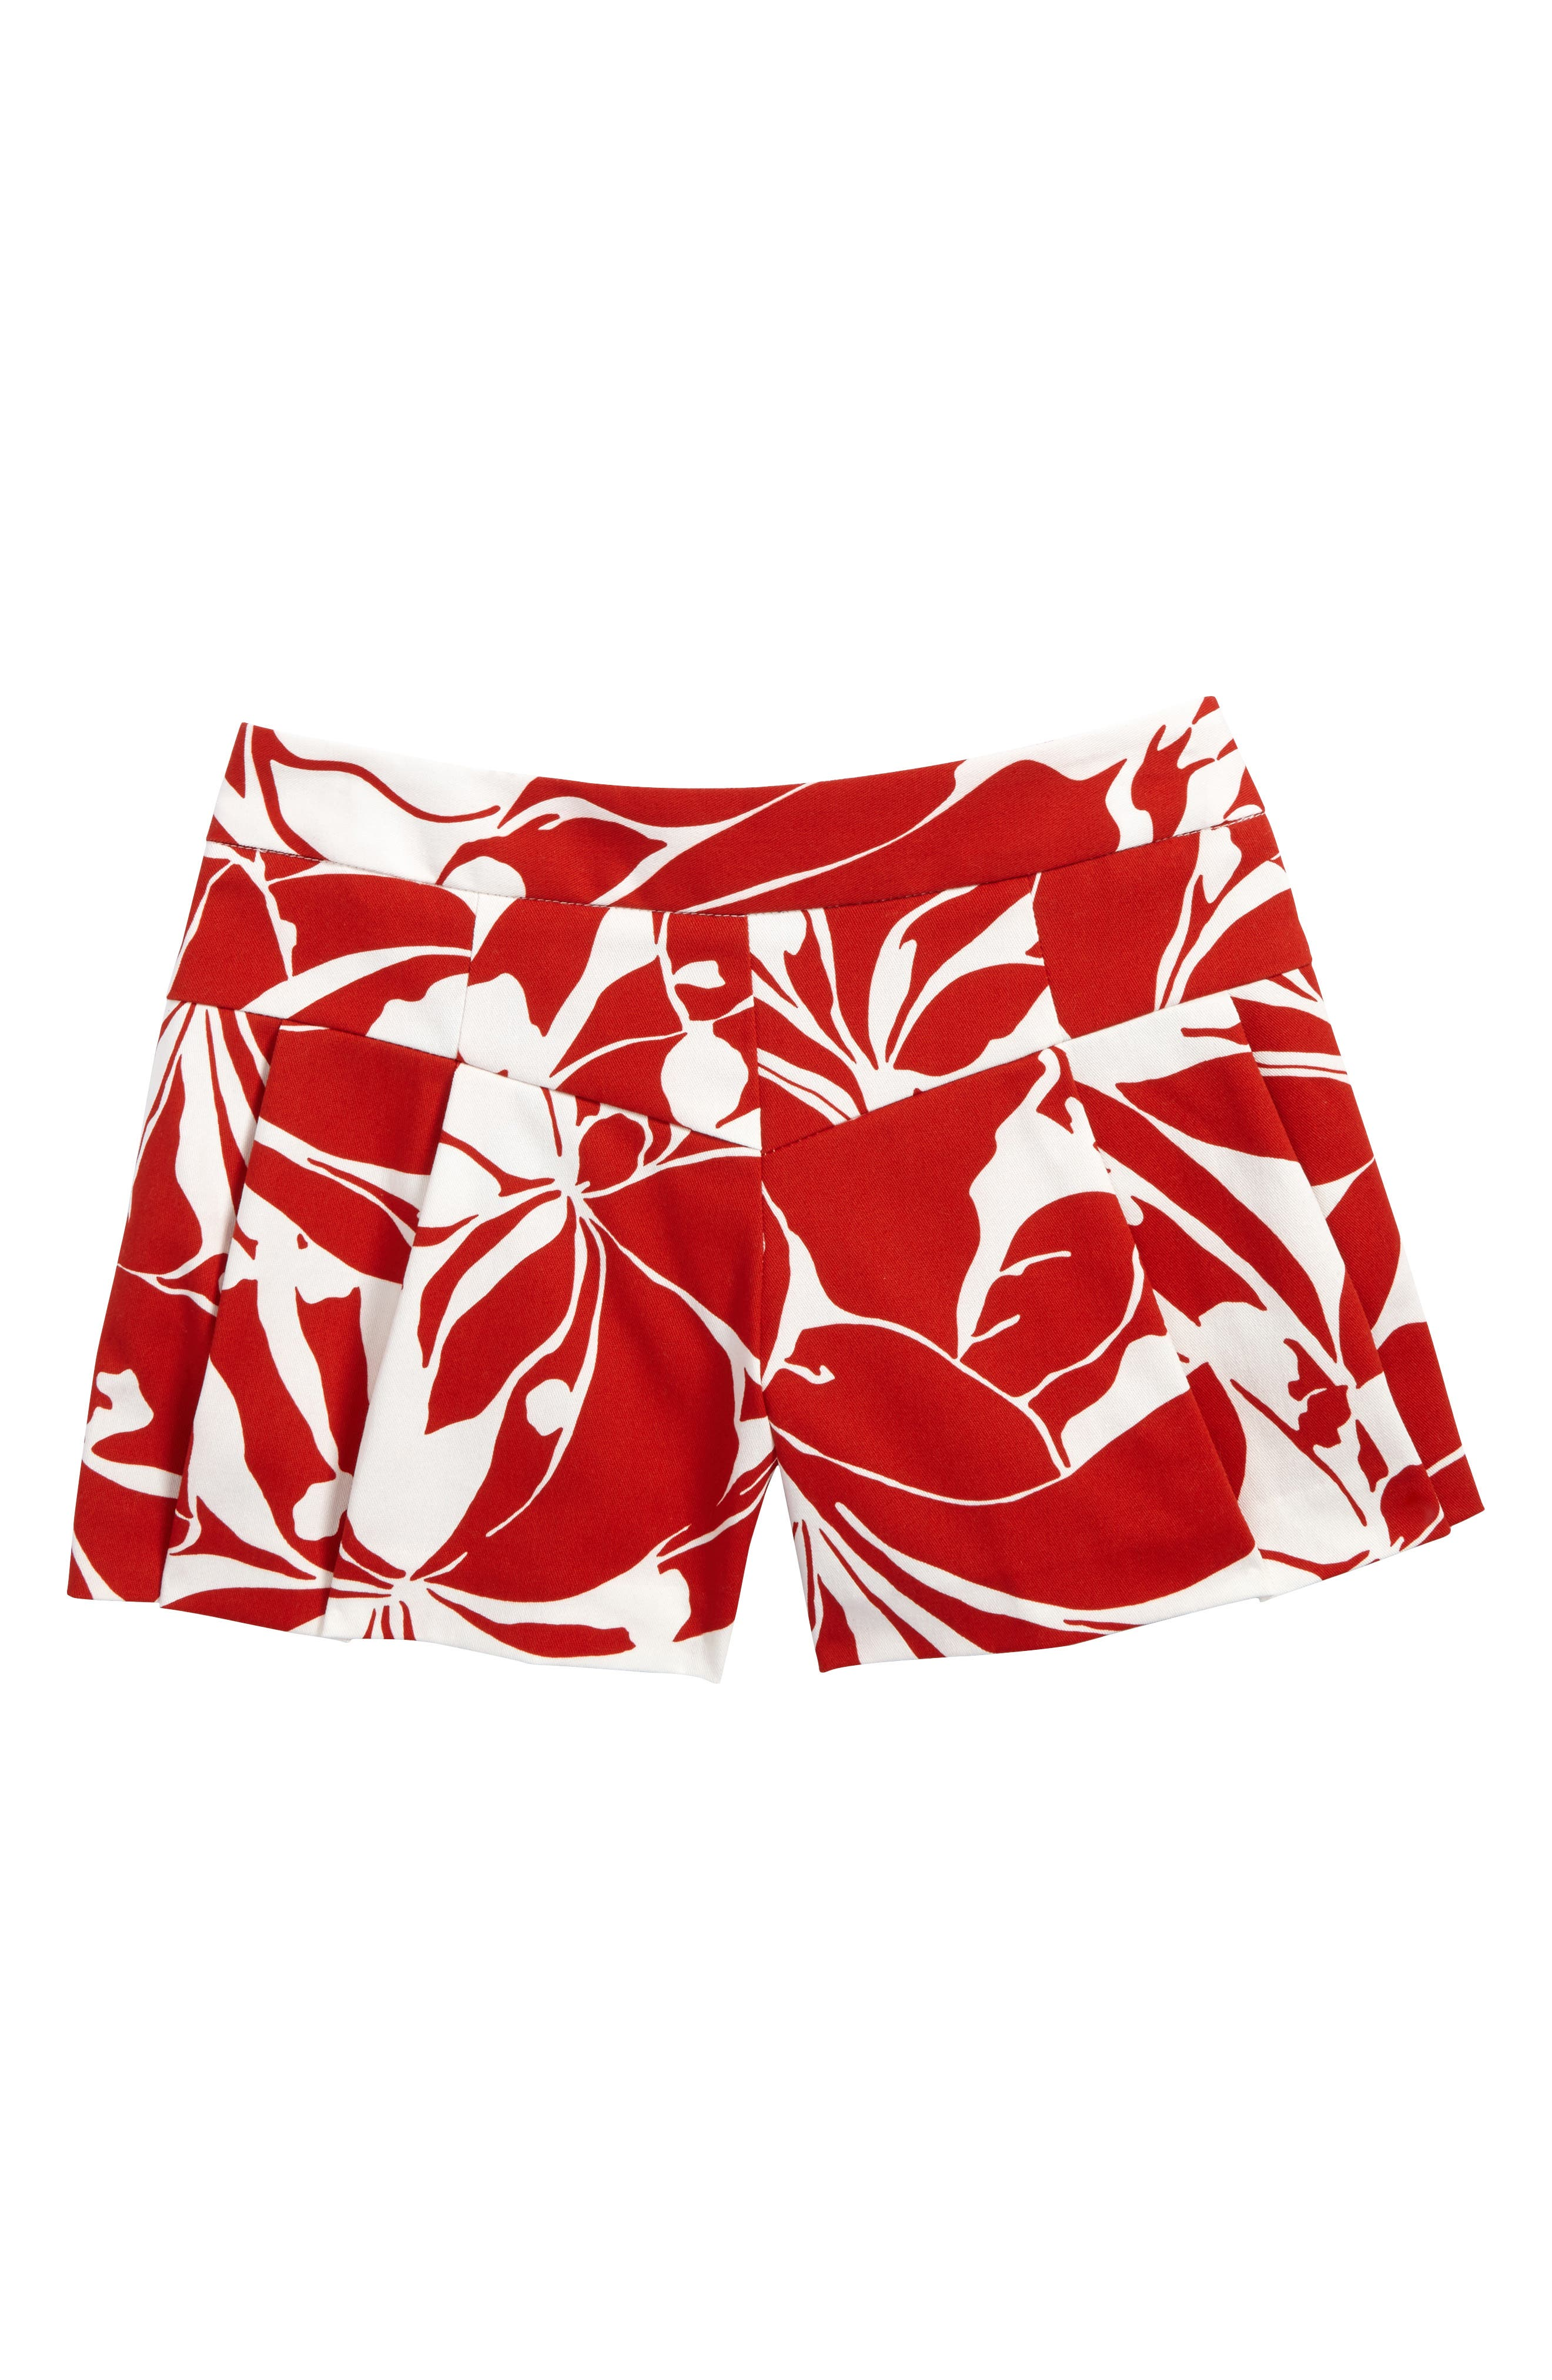 Pleated Shorts,                             Main thumbnail 1, color,                             Red/ White